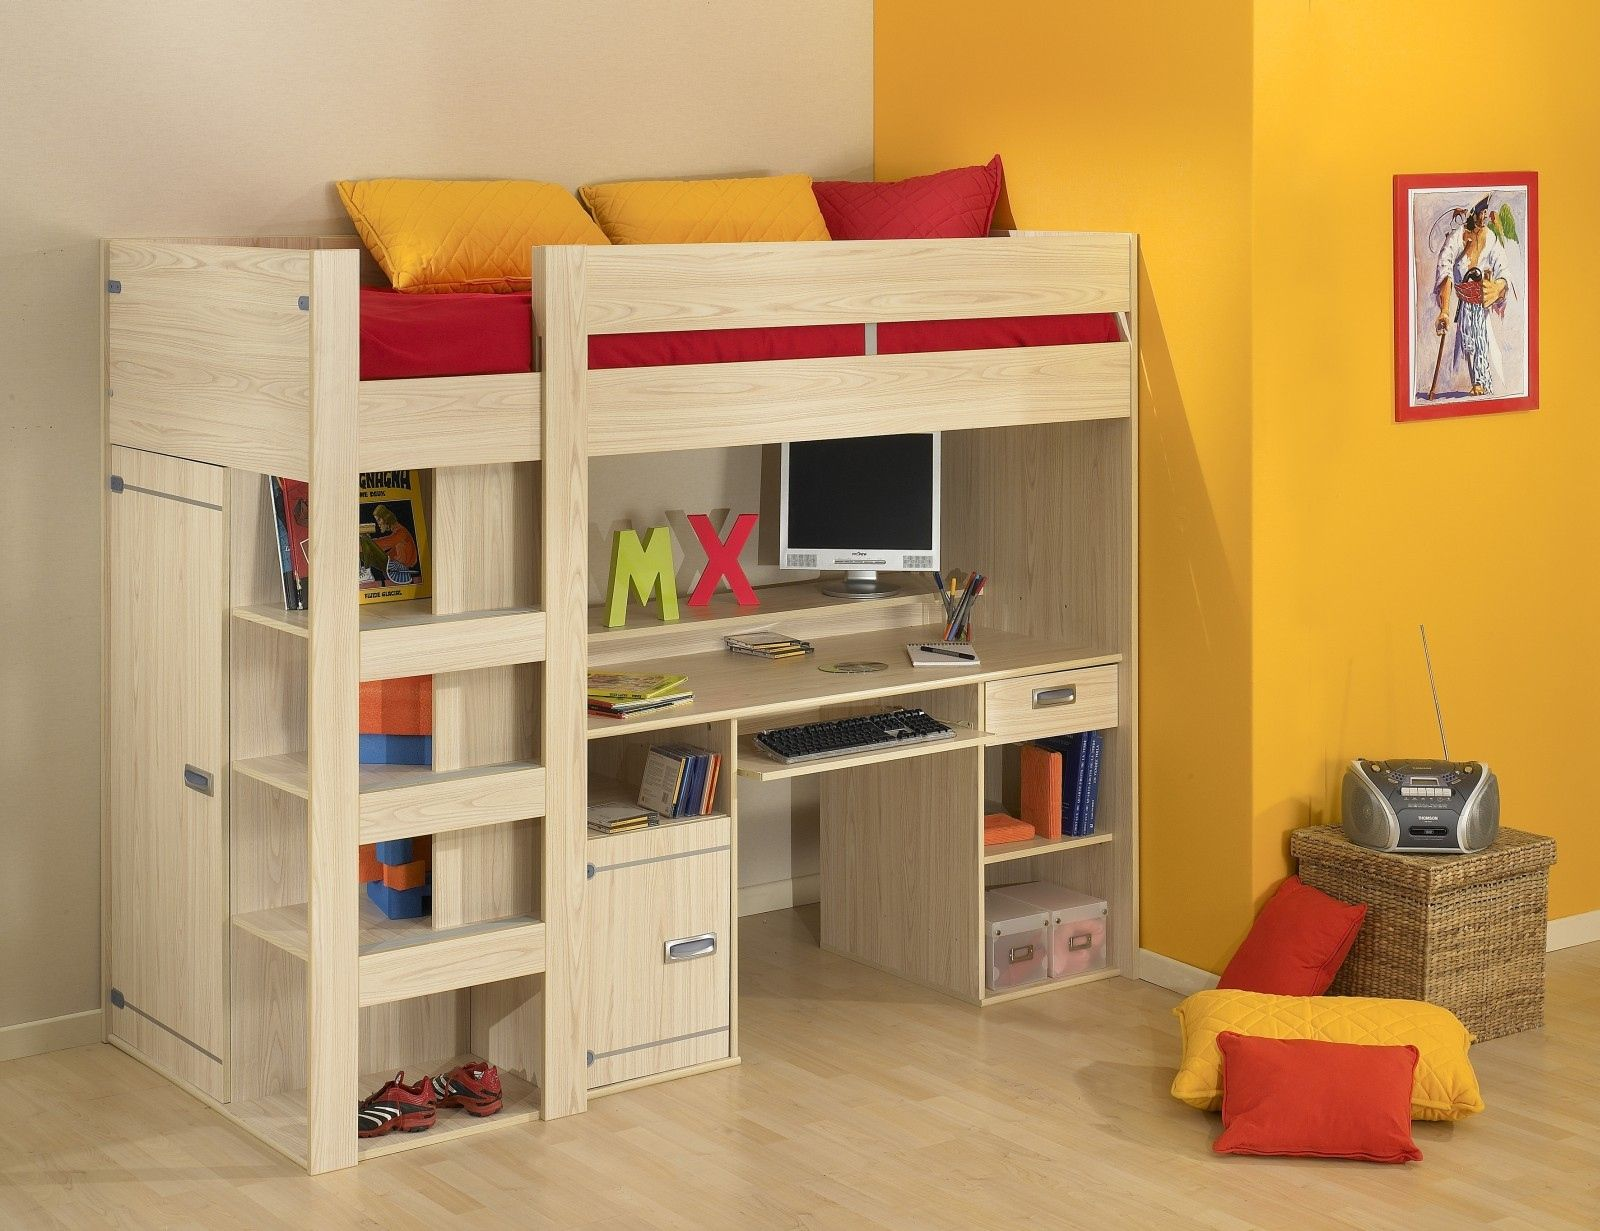 bunk theme single with design desk twin bed and loft very bedroom ideas kids funny storage